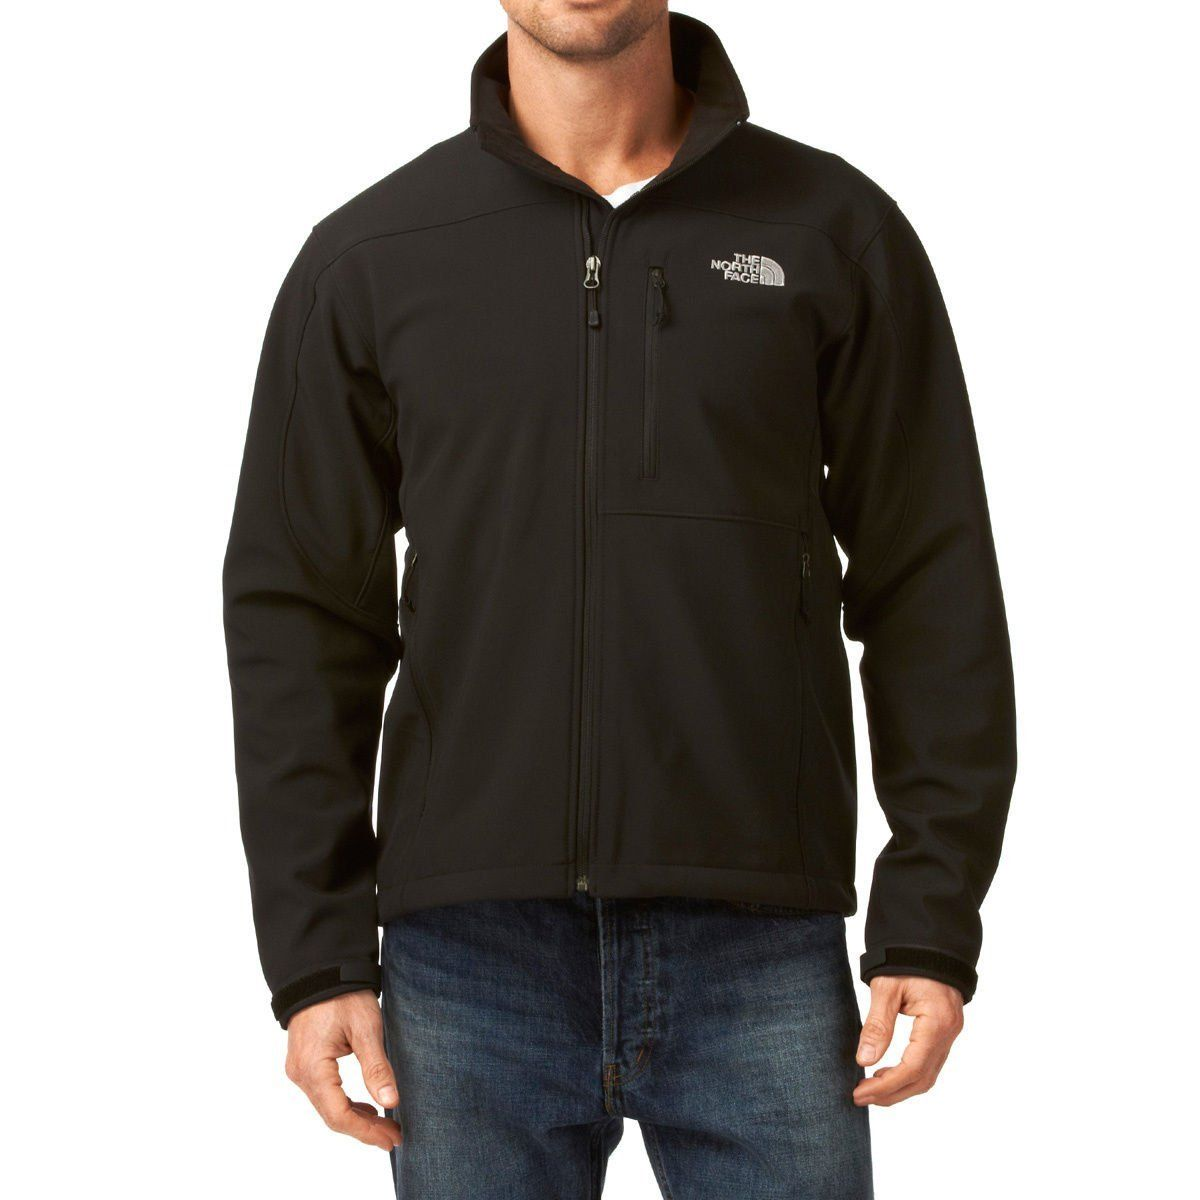 The North Face Apex Bionic Soft Shell Jacket Men S You Can Get More Details Here Hiking Clothes Black Outerwear North Face Mens Hiking Outfit [ 1200 x 1200 Pixel ]